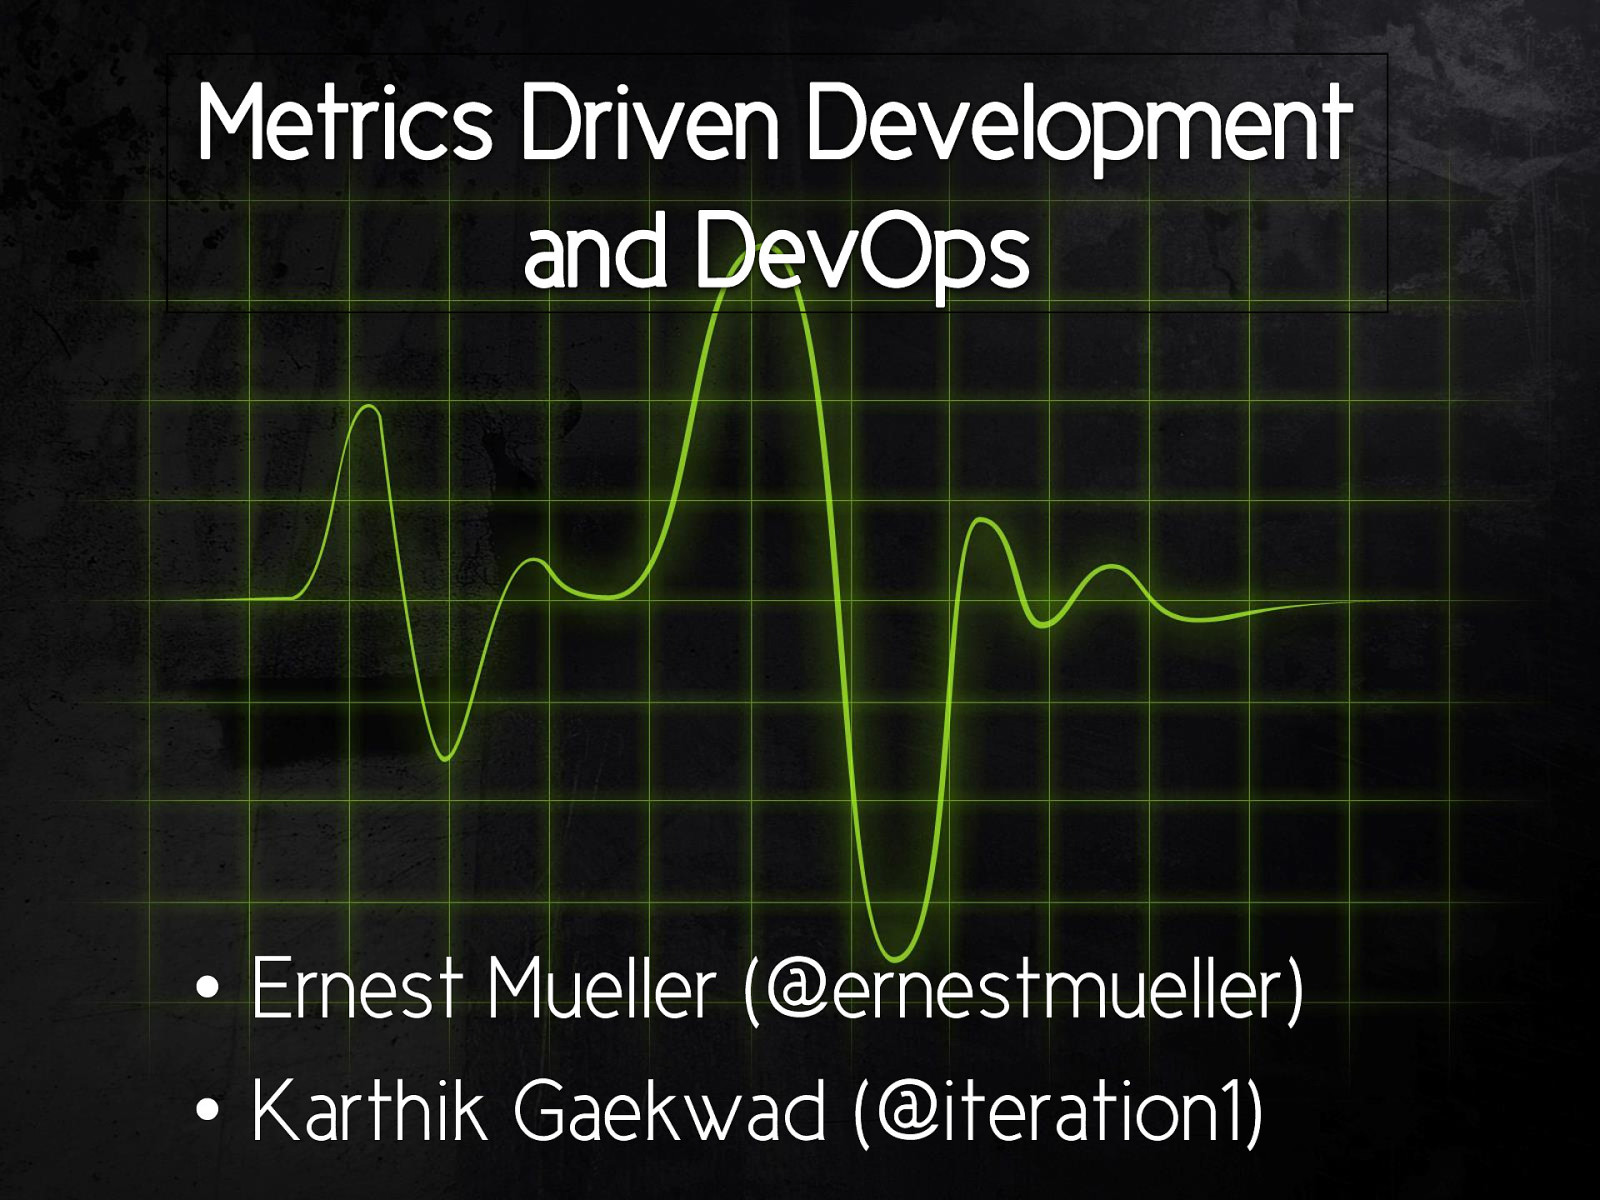 Metrics driven development and devops